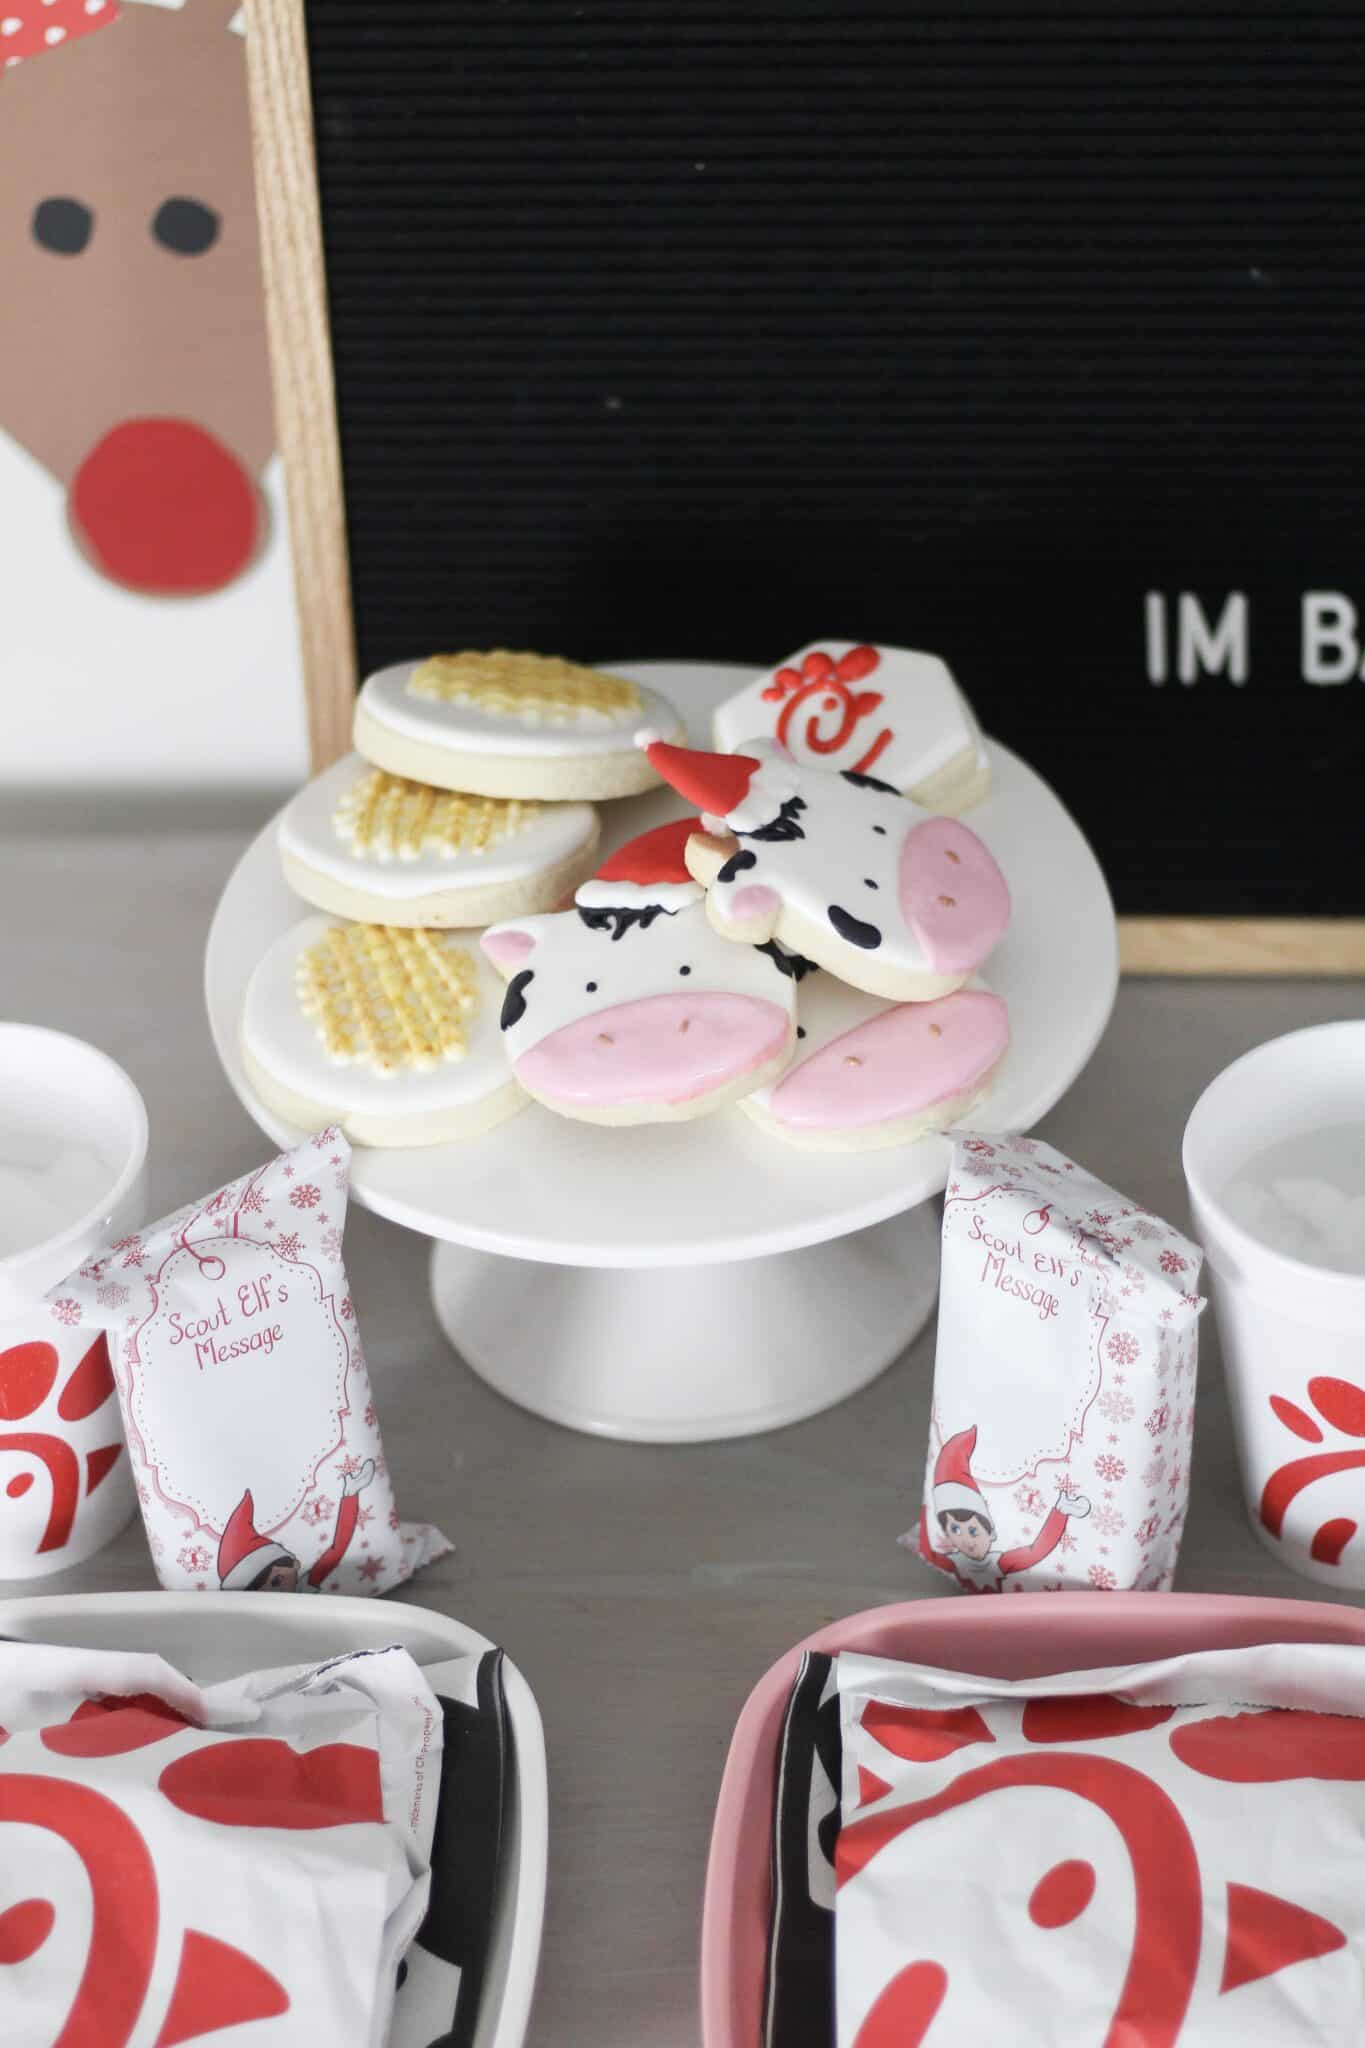 chick-fil-a themed sugar cookies